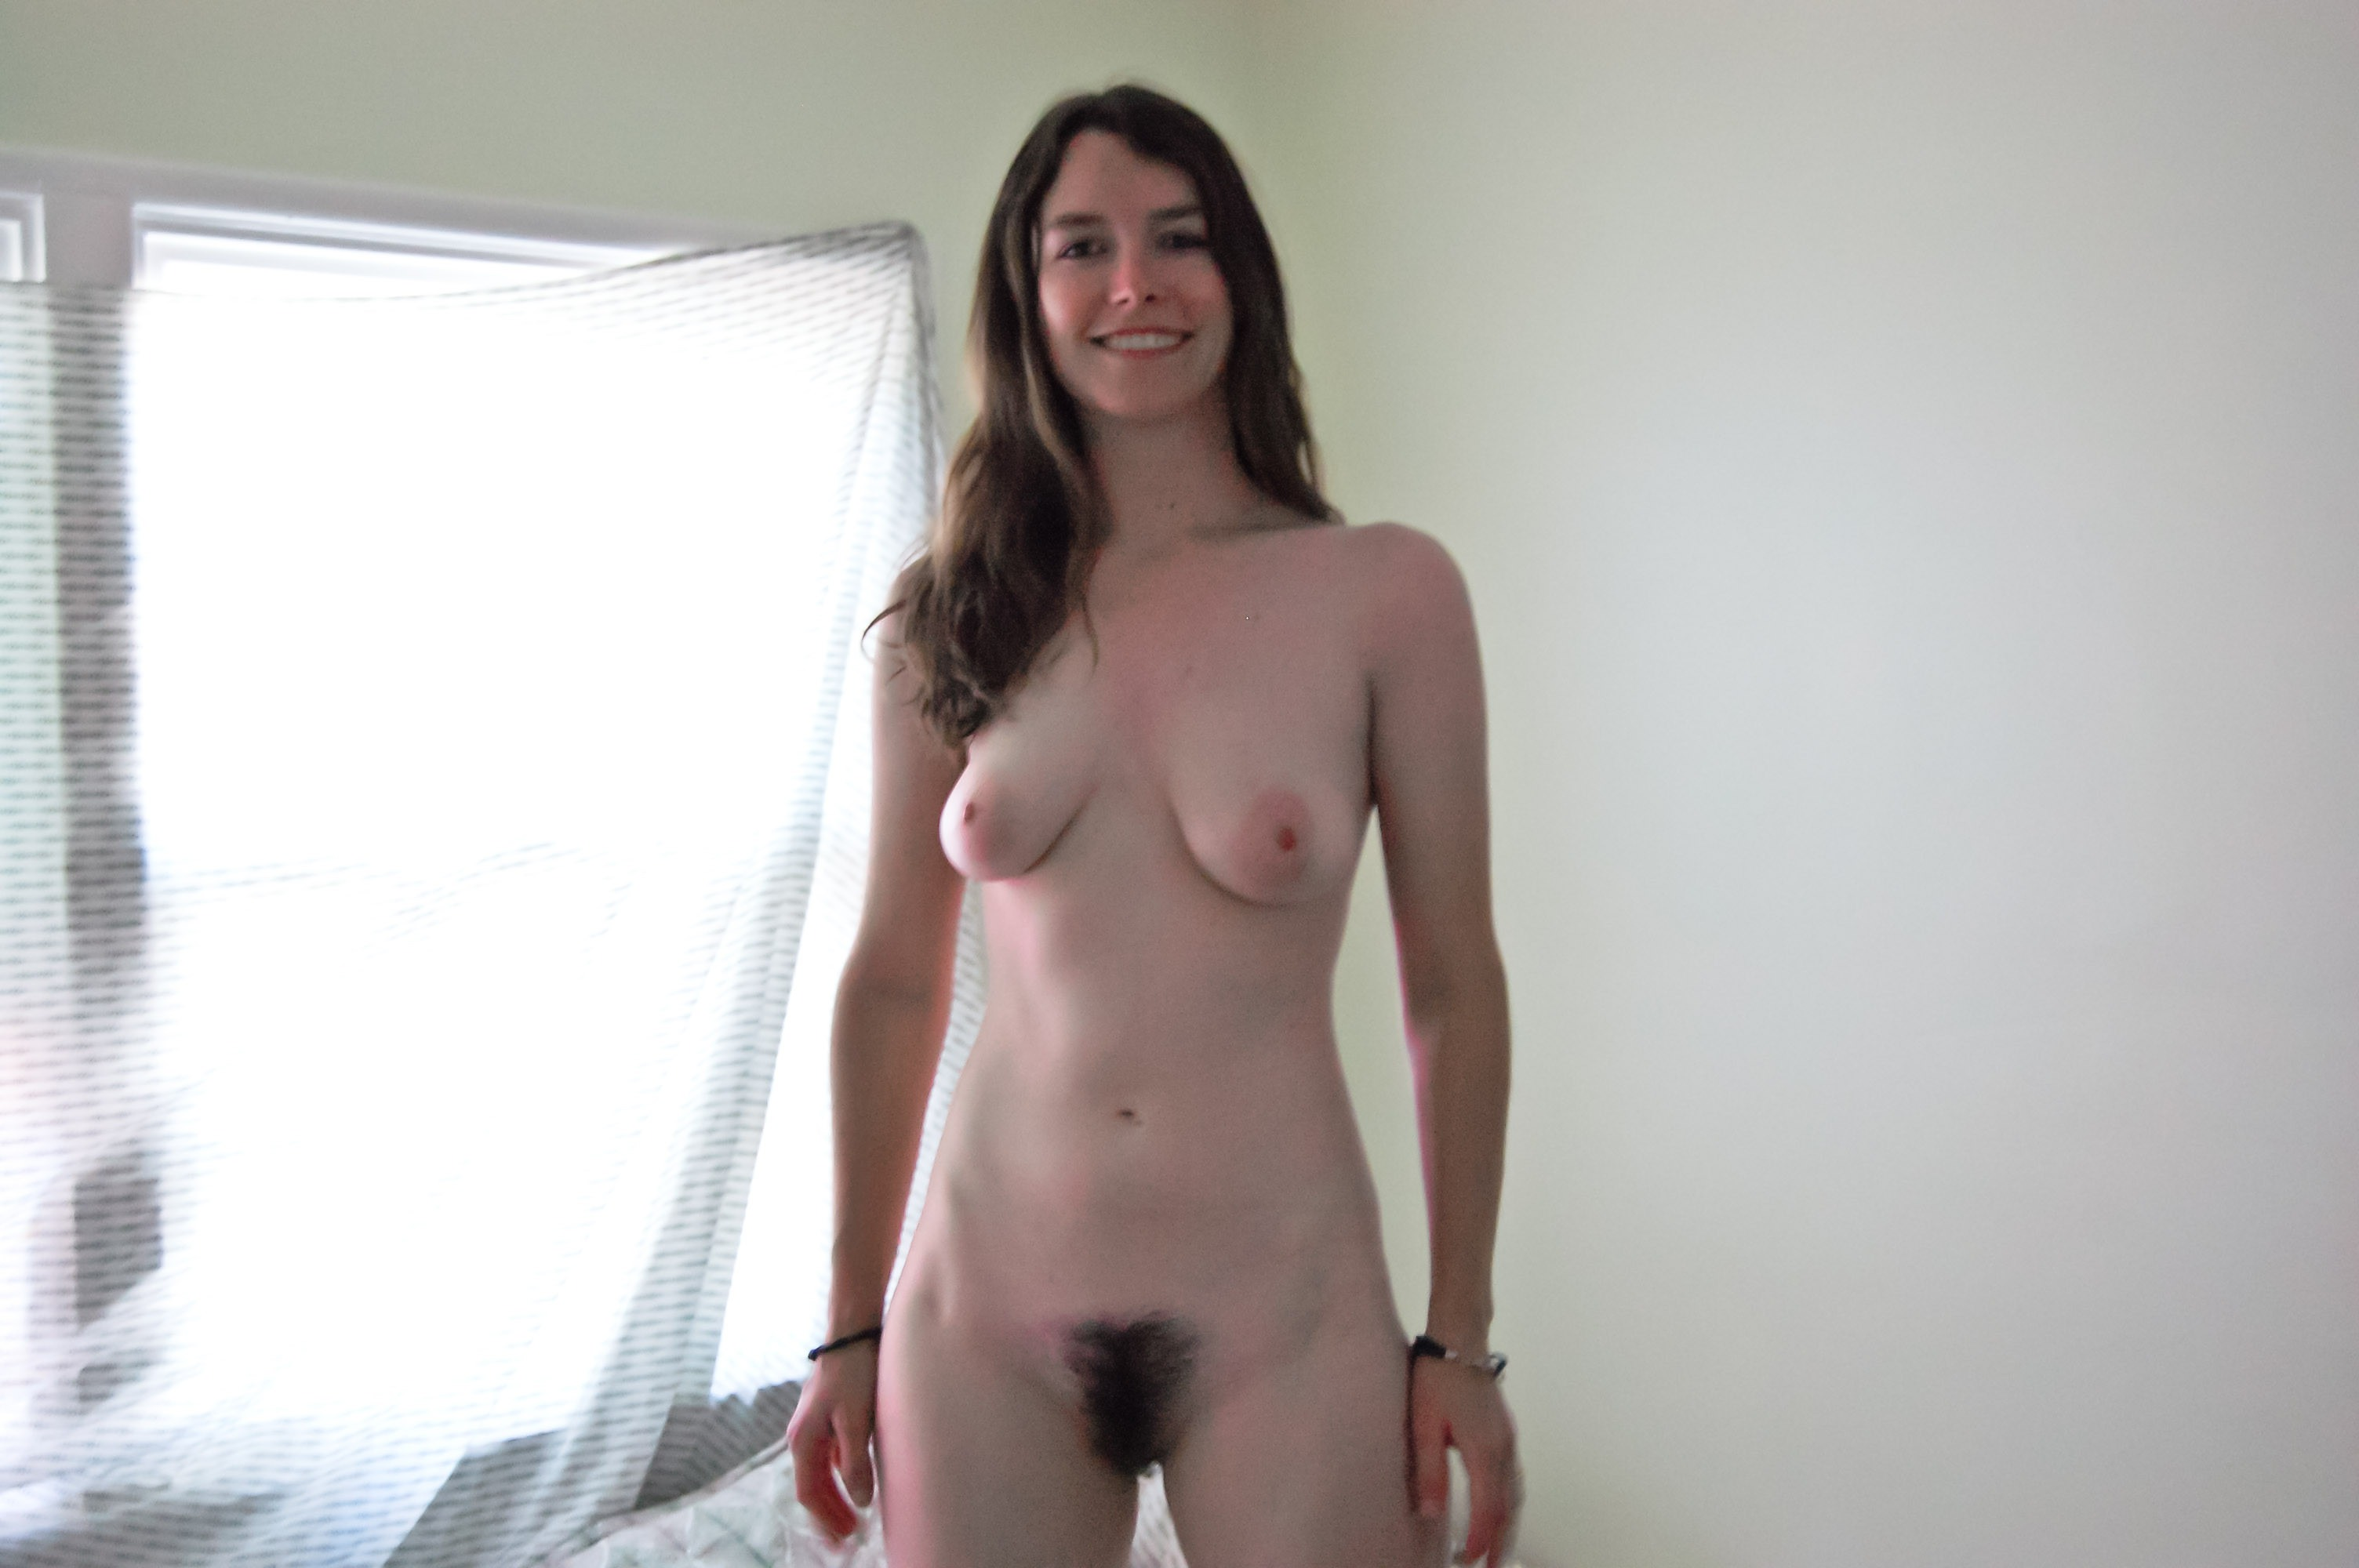 free cuckold videos cuck old porn movies cuck old porn tube #amateur #brunette #cunt #hot #mature #milf #mom #naked #nude #pussy #selfie #selfshot #sexy #wife